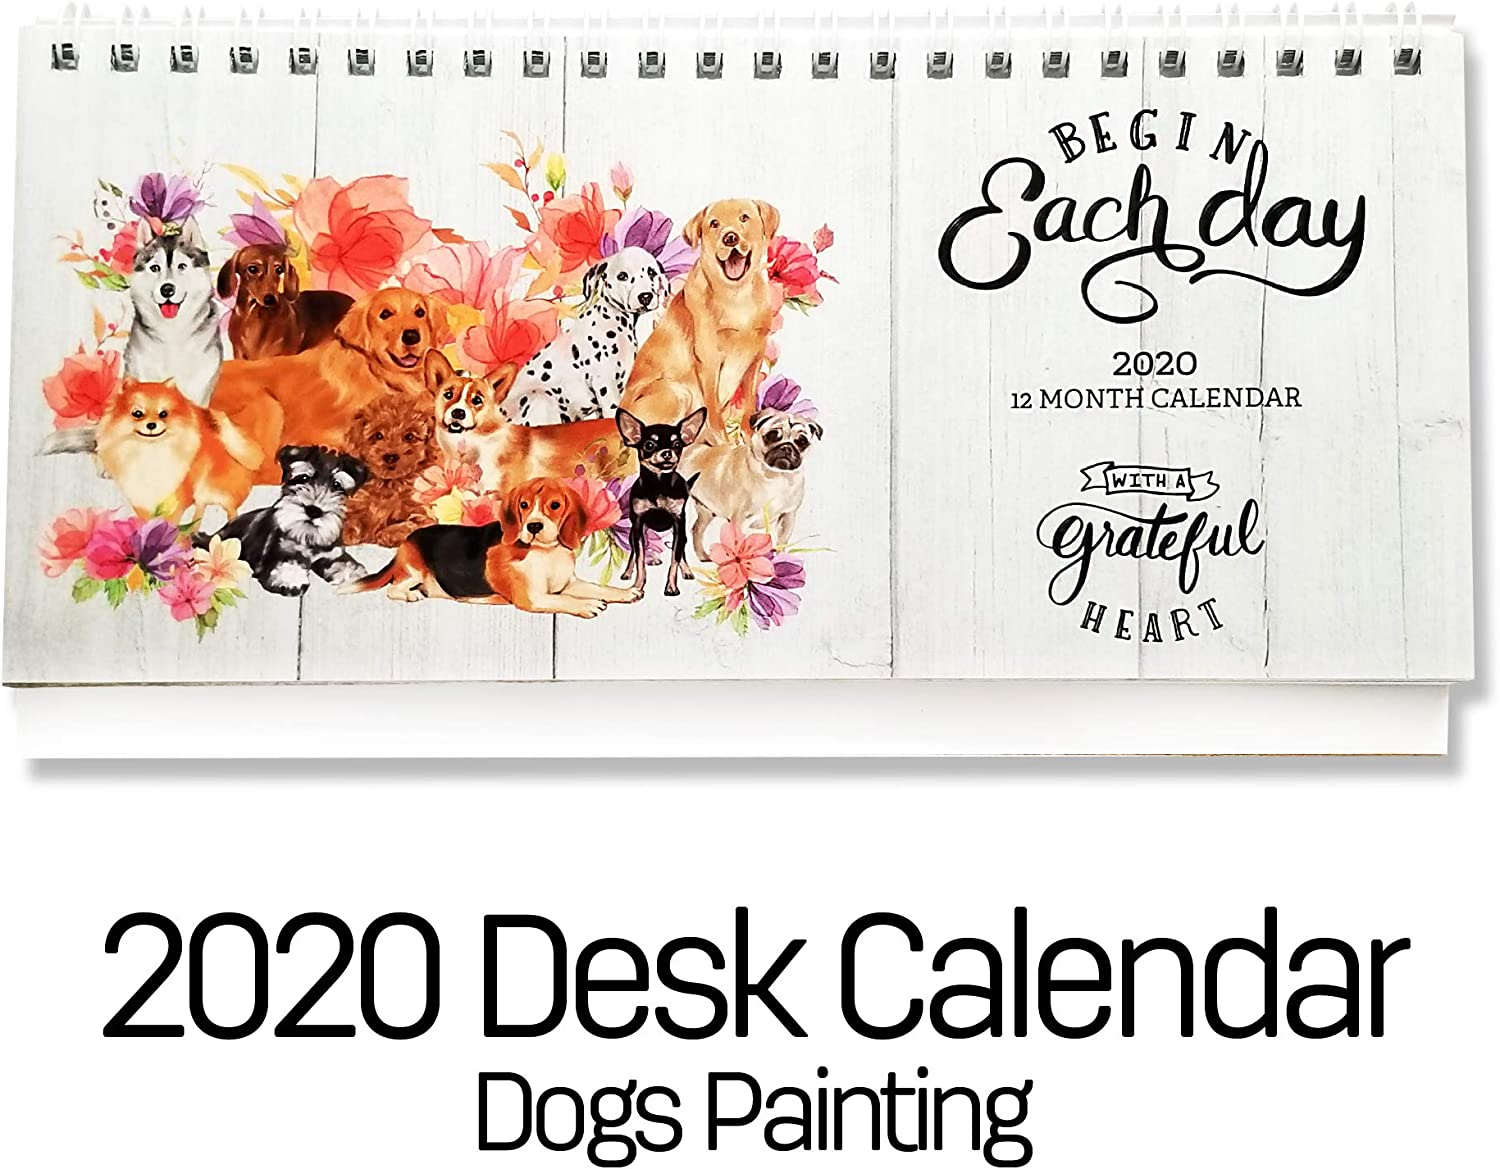 2020 Stand Up Desk Calendar-Cute Dog and Floral Theme Desk Calendar, Small Size Monthly Home, Business, Office Calendars for 2020-2021, 365 Days Planner and Decor. (2020 Version)